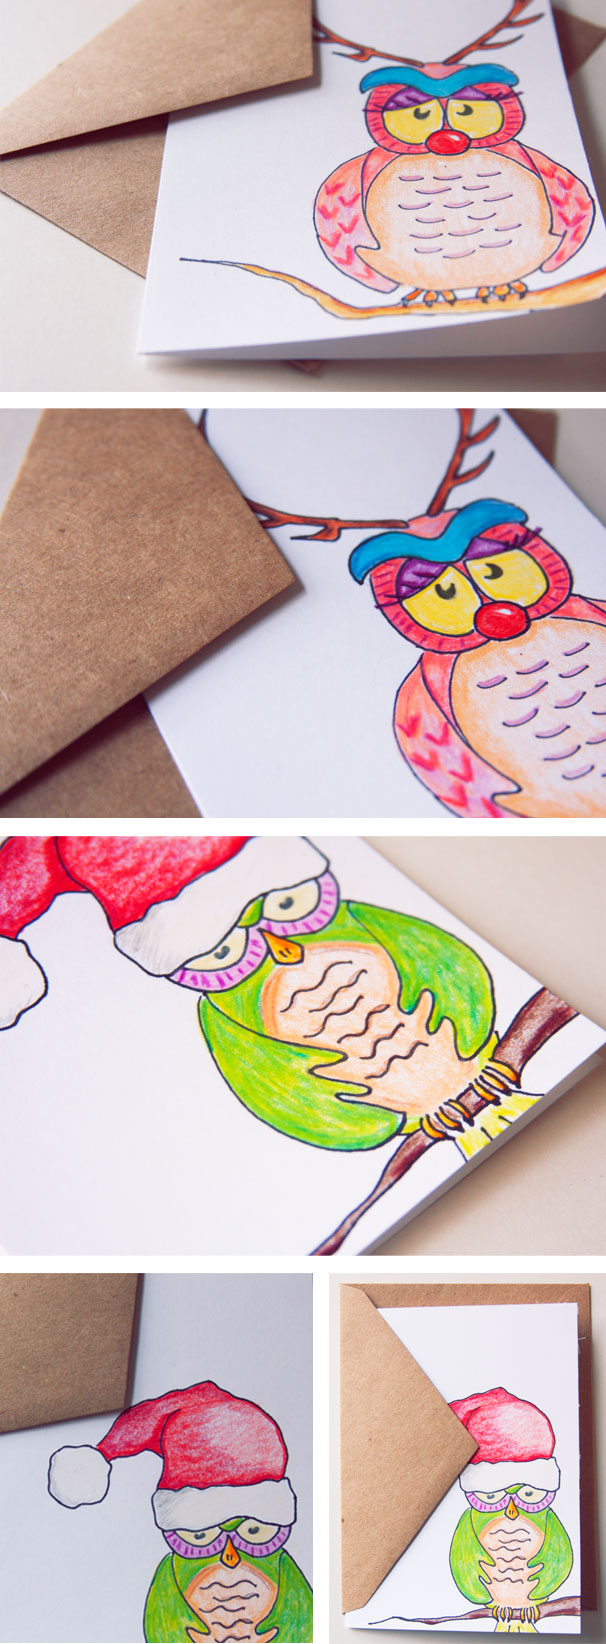 Owls in disguises